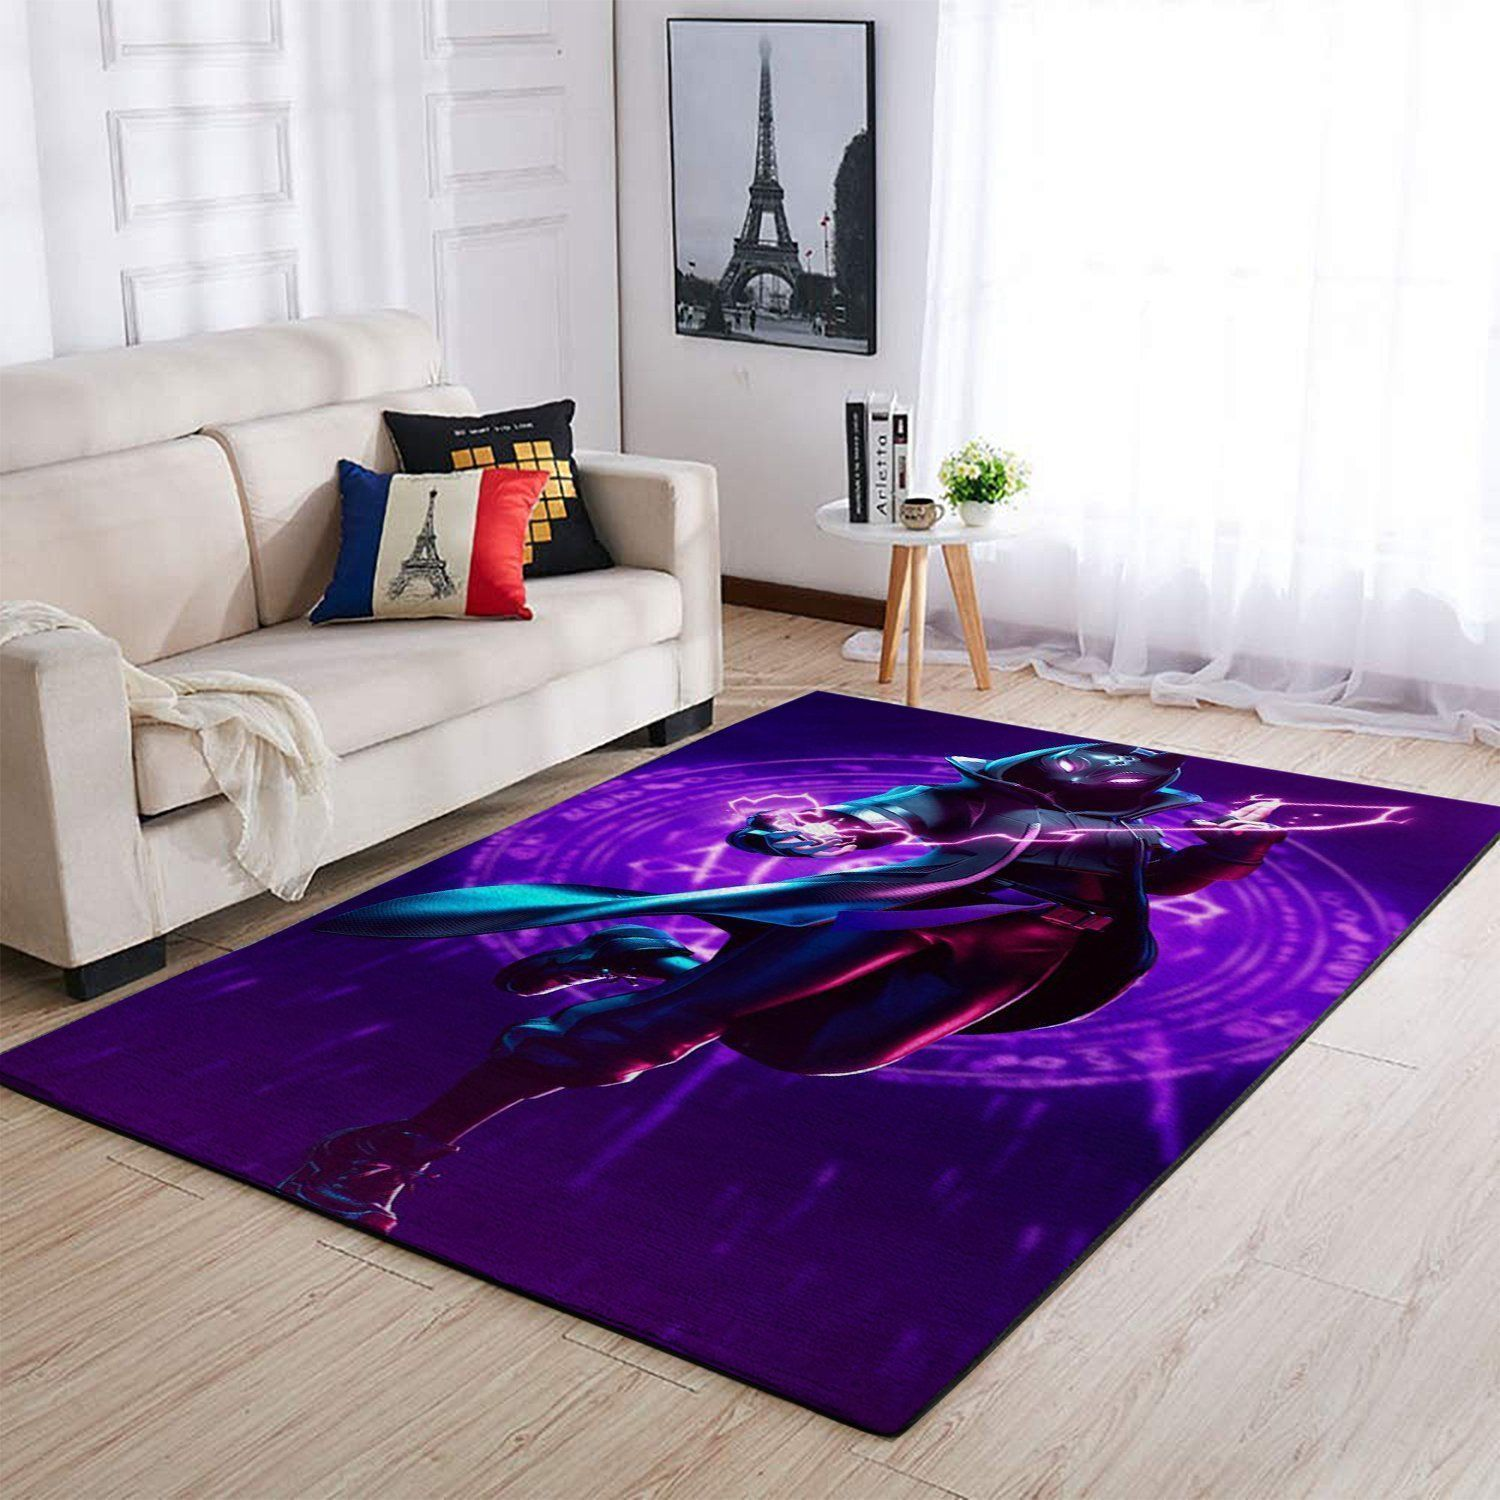 Fortnite Area Rug Video Game Carpet, Gamer Living Room Rugs, Floor Decor 1909264